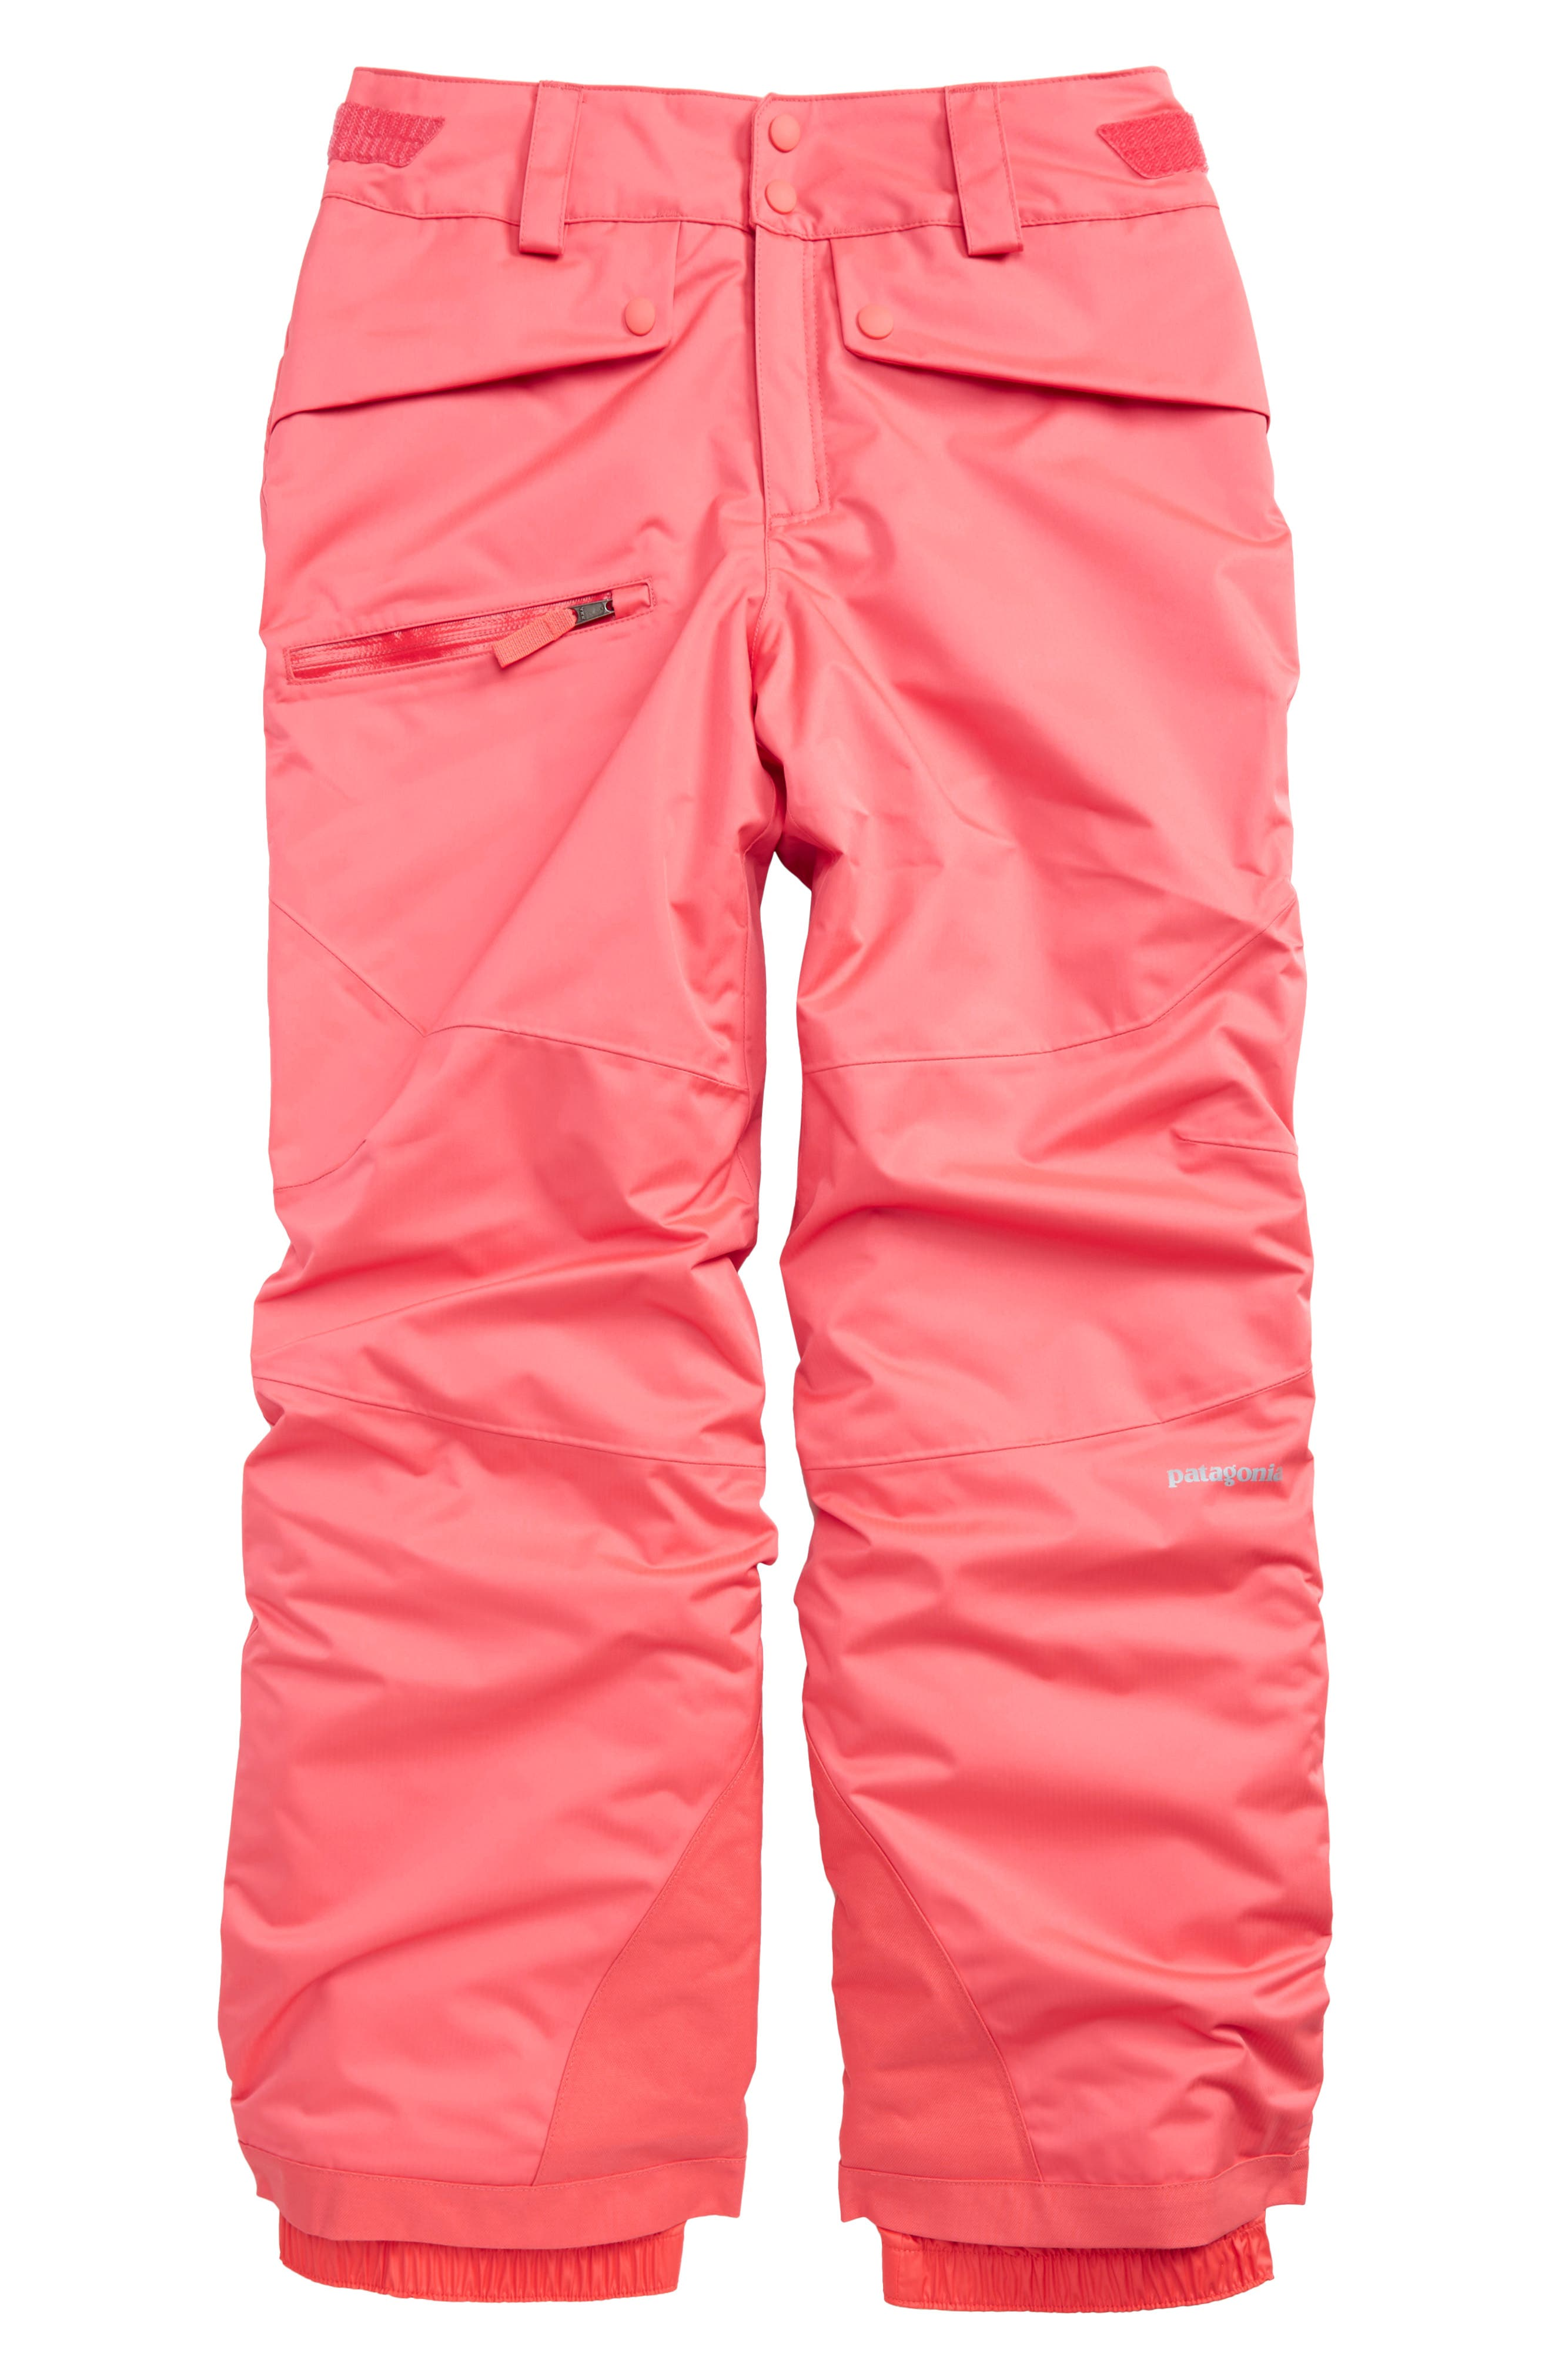 Snowbelle Insulated Snow Pants,                             Main thumbnail 1, color,                             Indy Pink